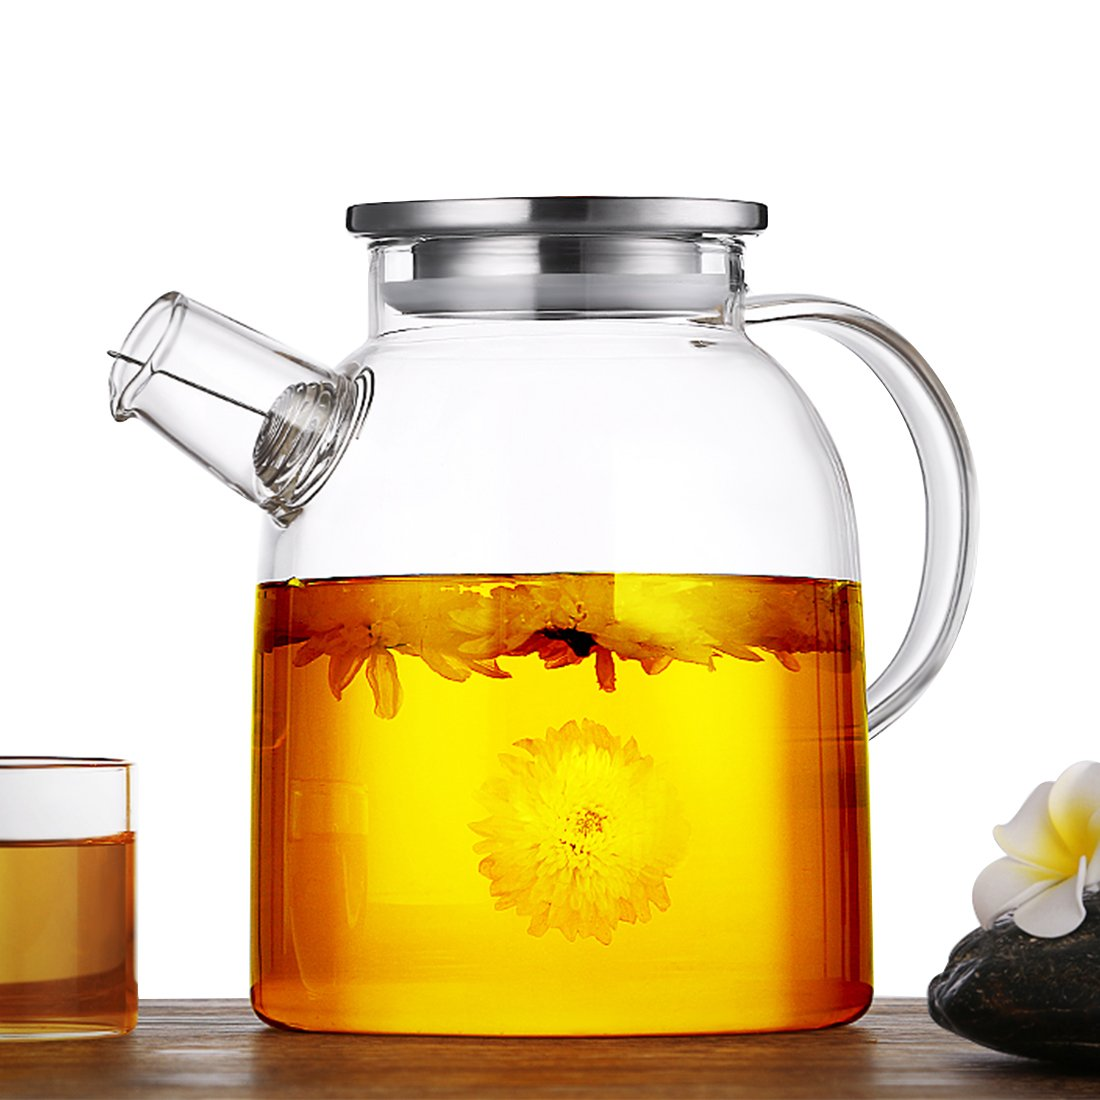 JIAQI 1600ml /54oz Glass Water Pitcher, Heat Resistant Glass Teapot with Stainless Steel Lid and Filter Coil Handcraft Water Jug Ideal for Fruit Tea Container and Blooming Glass Kettle GYBL060